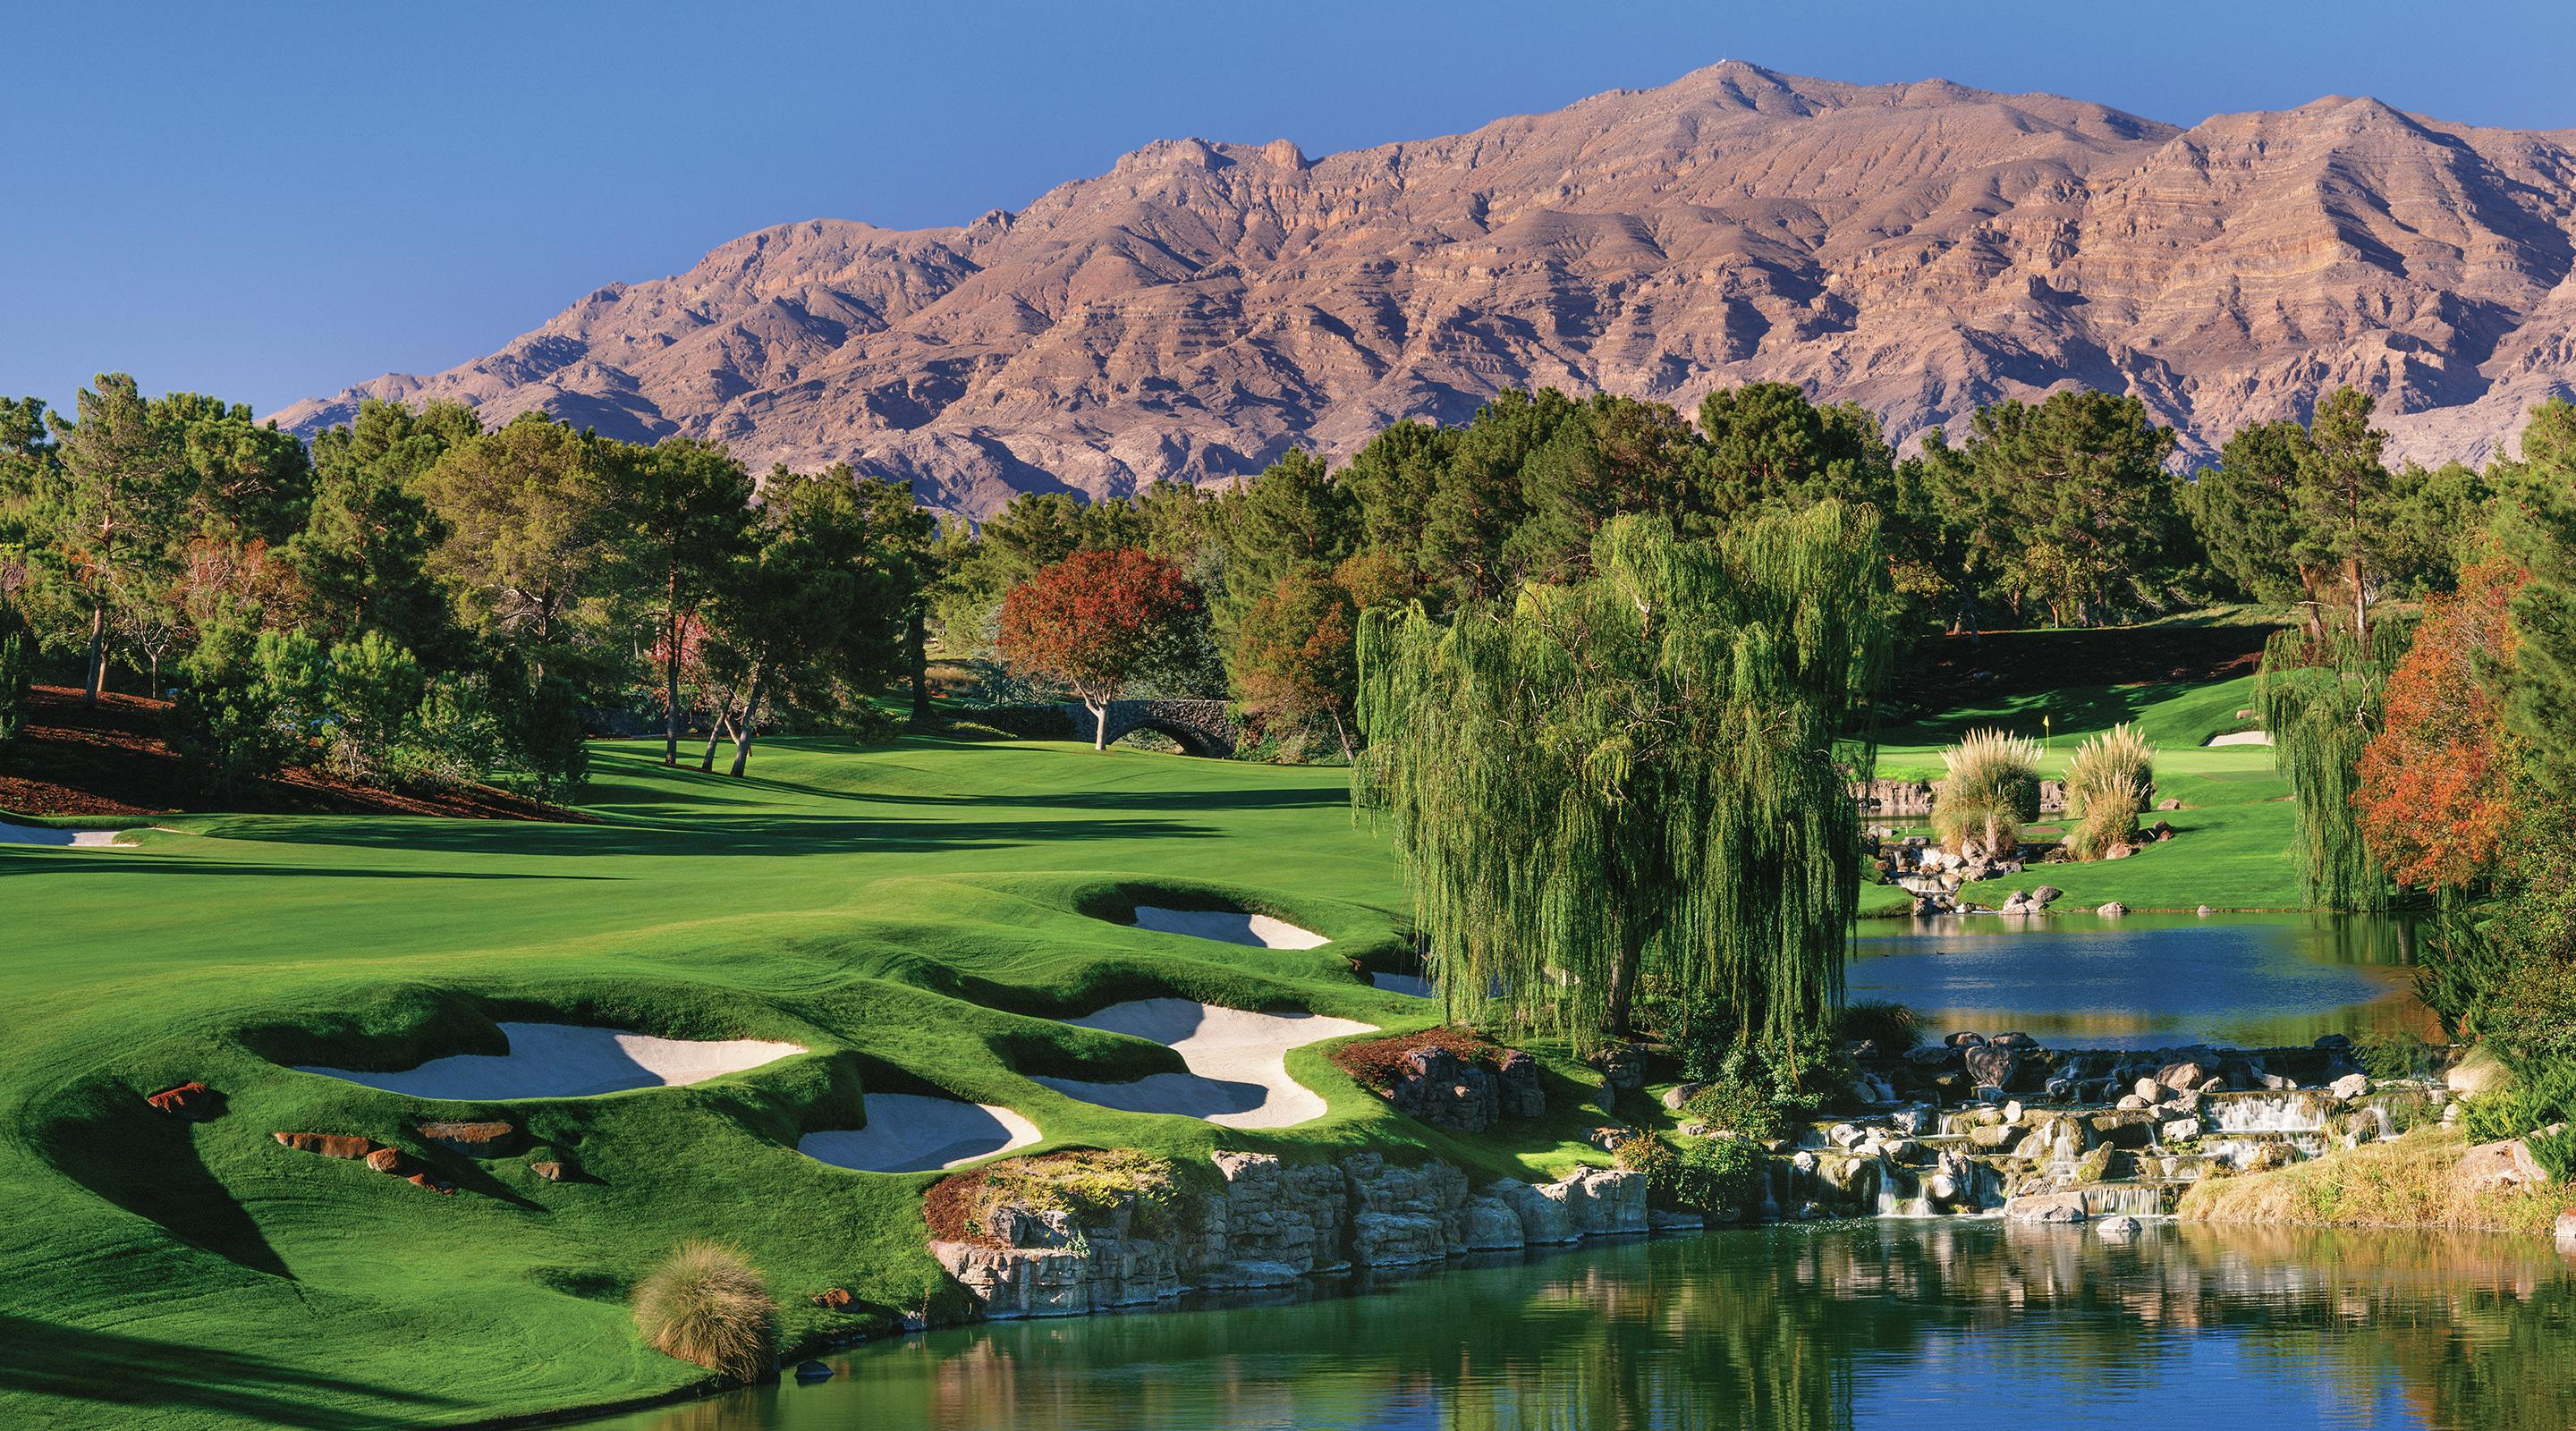 Golf Courses Las Vegas Nevada